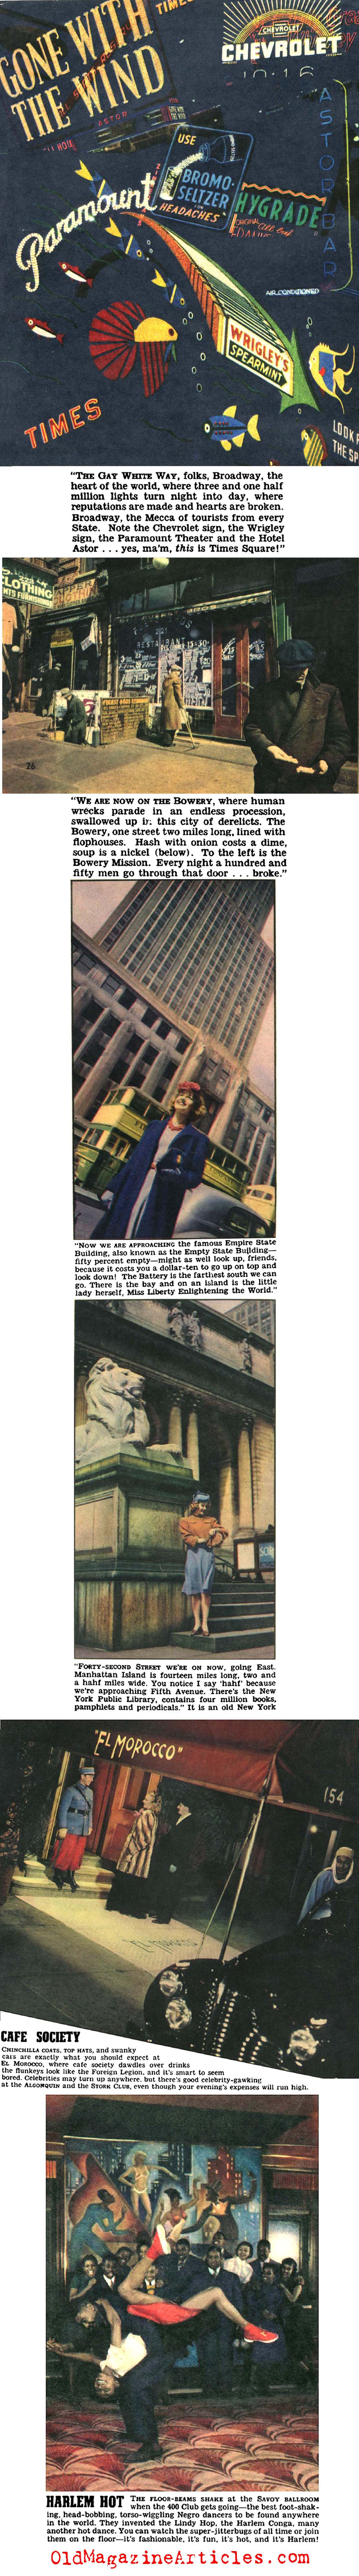 Six Color Photos of 1940 Manhattan (Click Magazine, 1940)